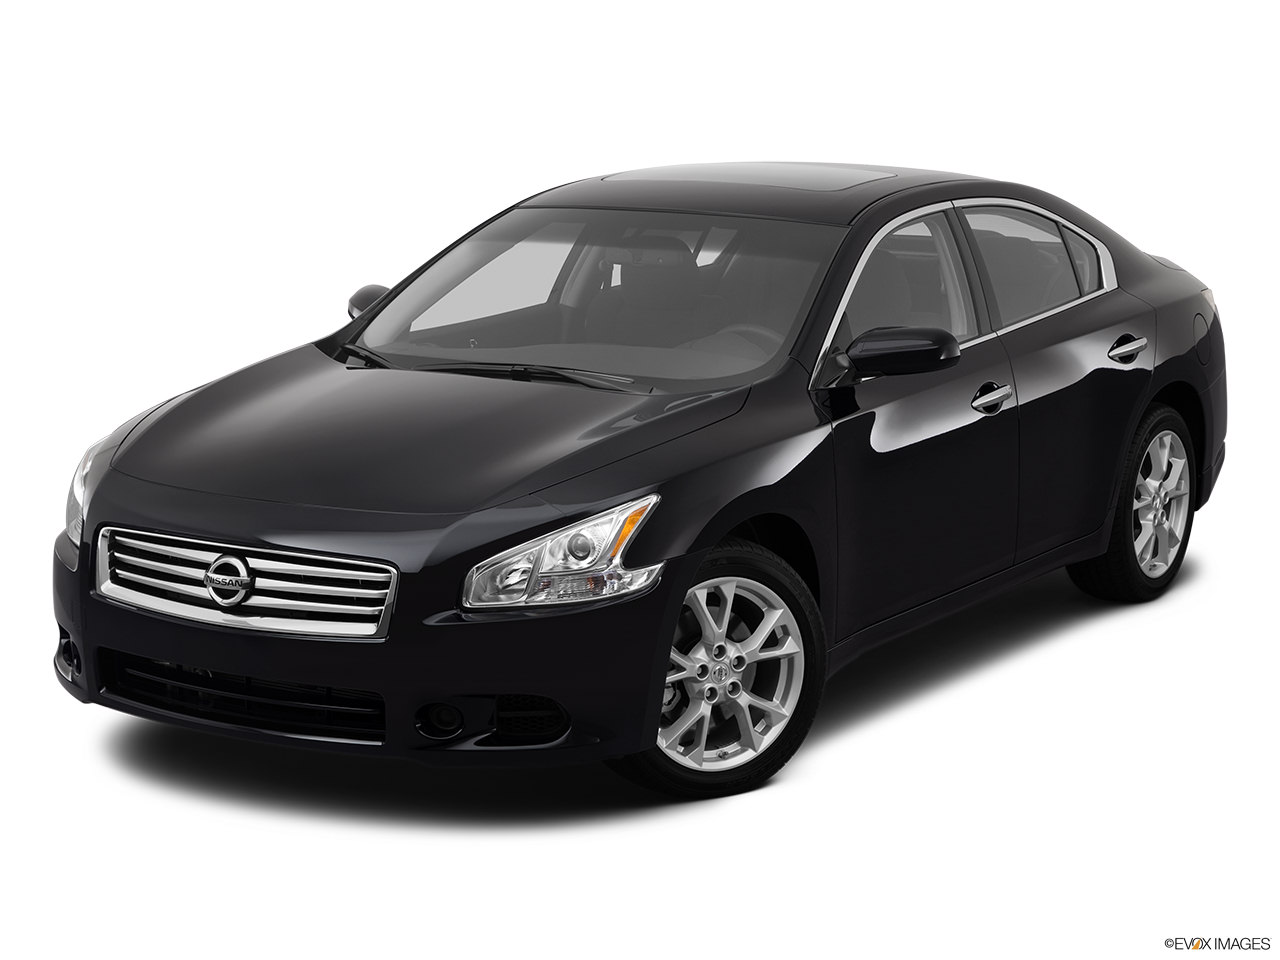 A buyers guide to the 2012 nissan maxima yourmechanic advice nissam maxima 2012 vanachro Images